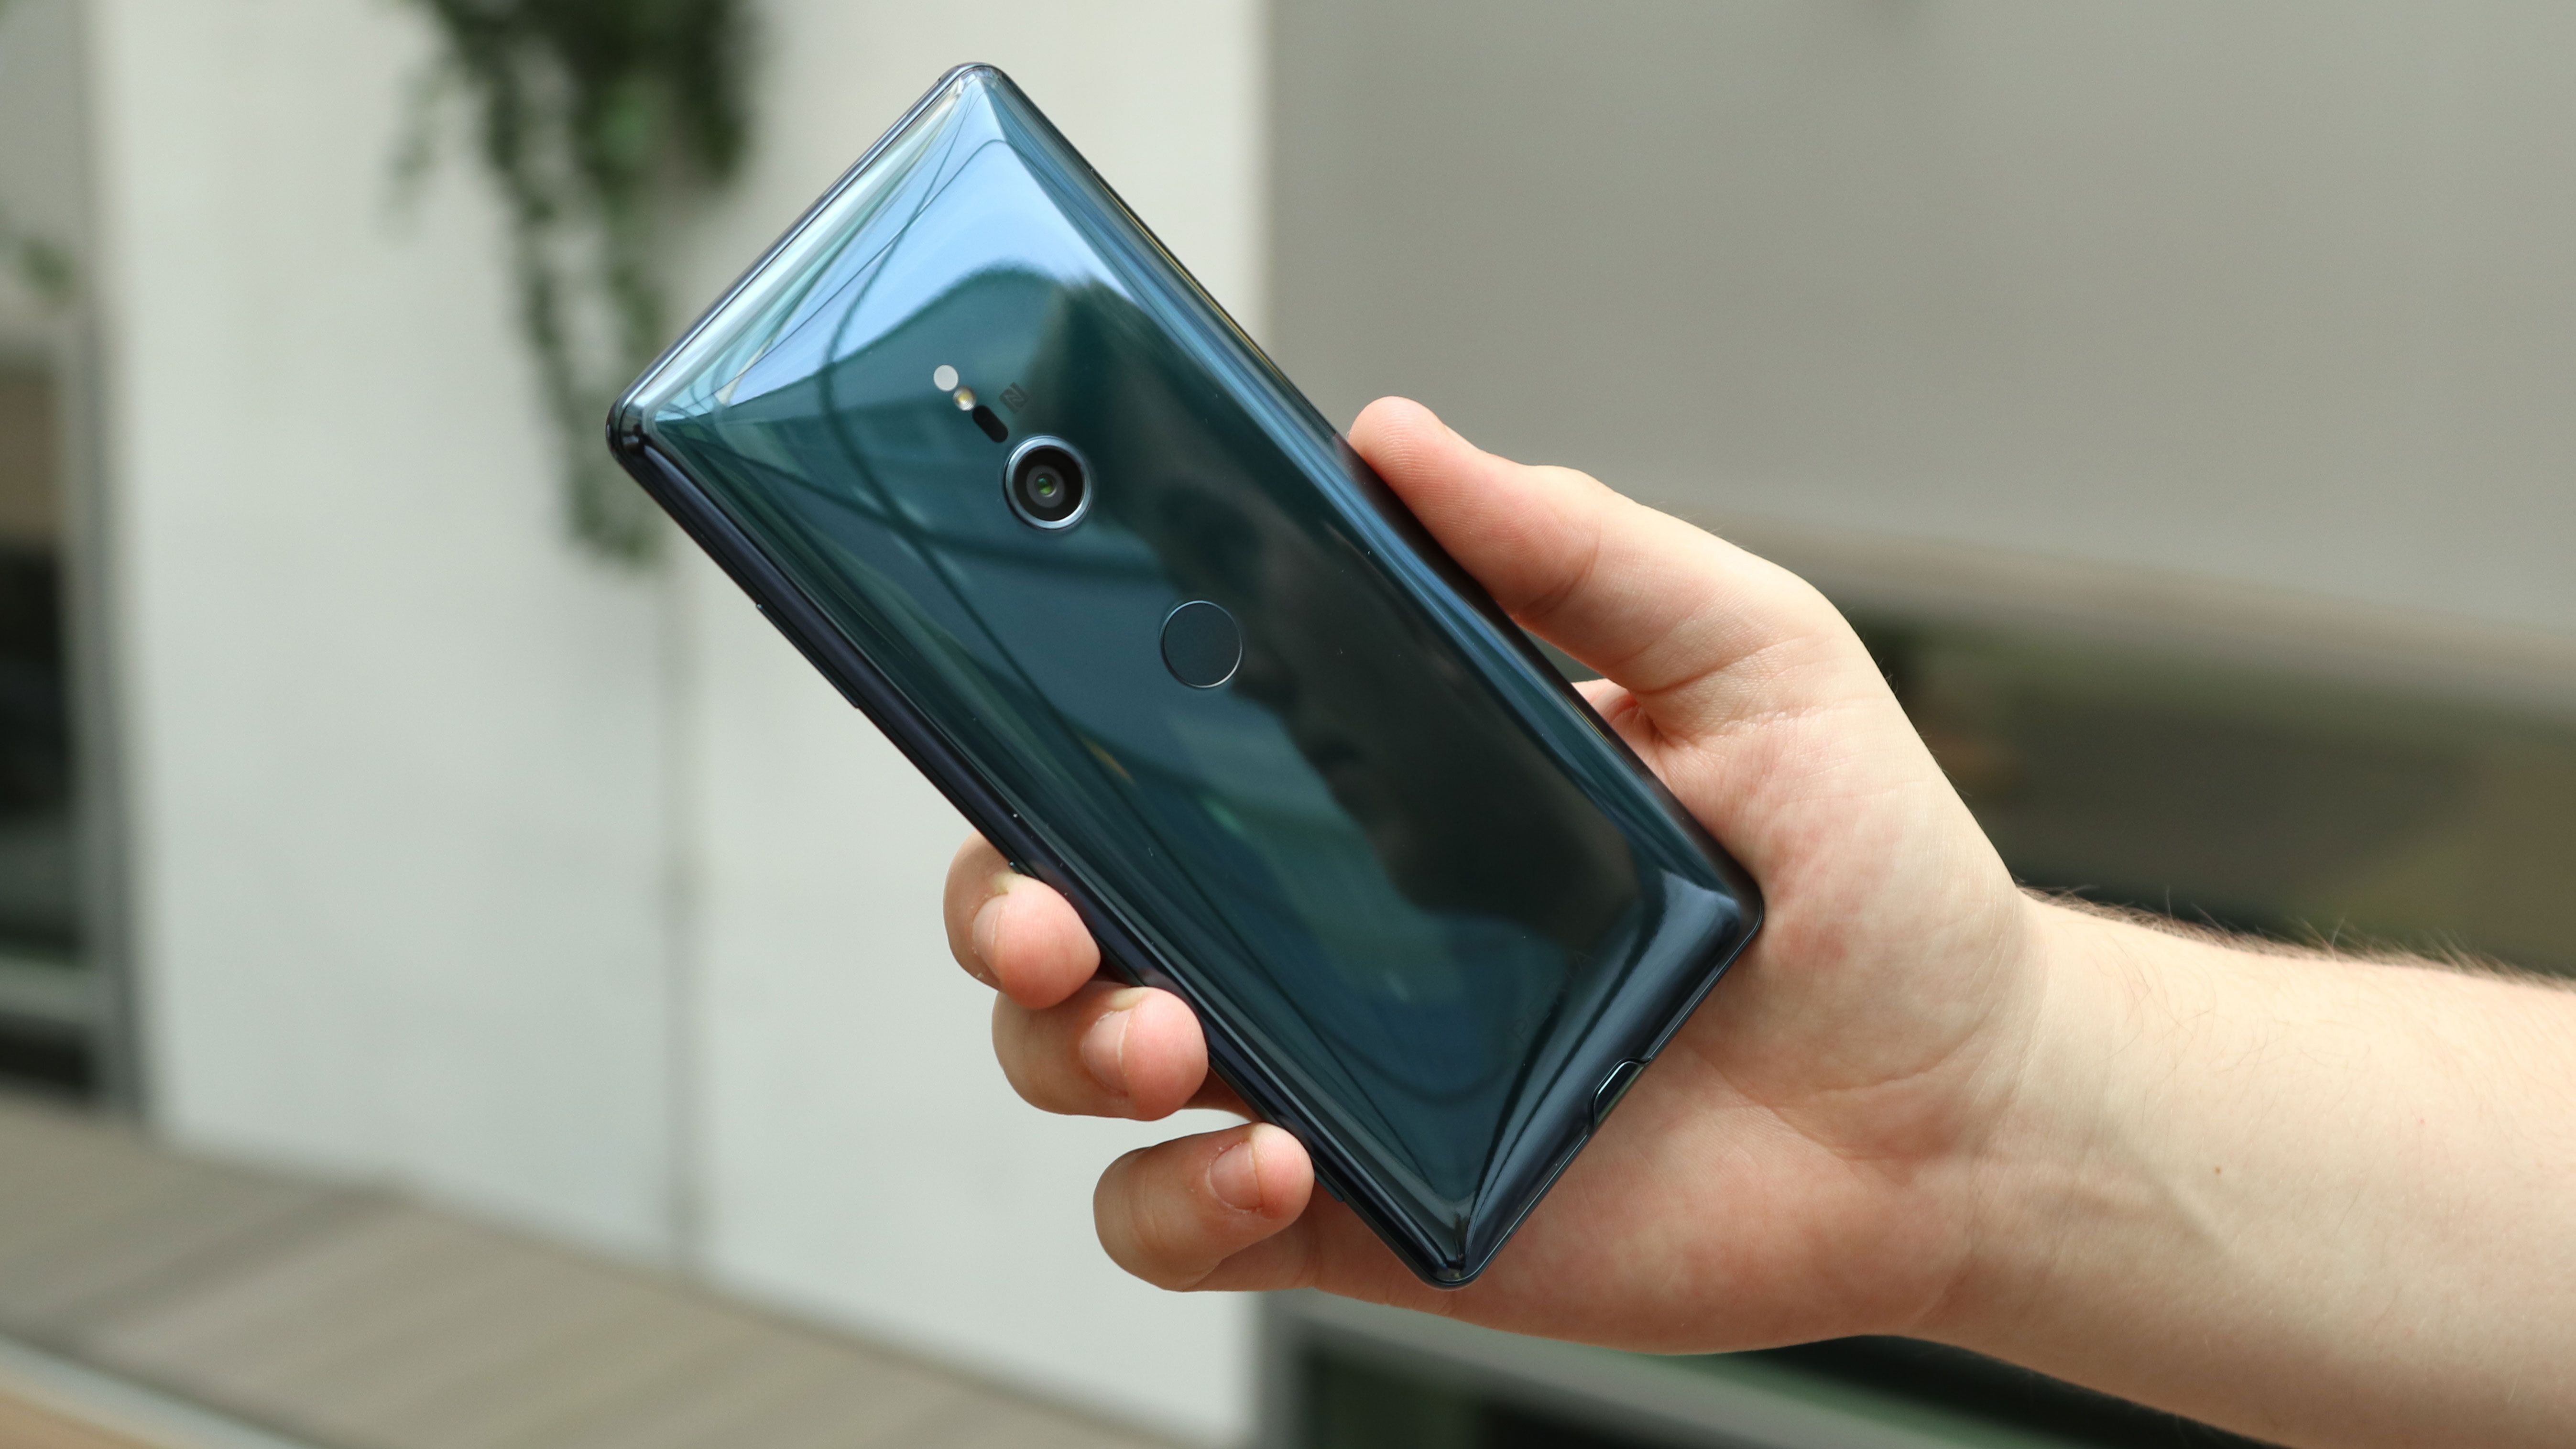 Sony Xperia Xz3 Vs Sony Xperia Xz2 Sony Xperia Finger Print Scanner 5 Inch And Up